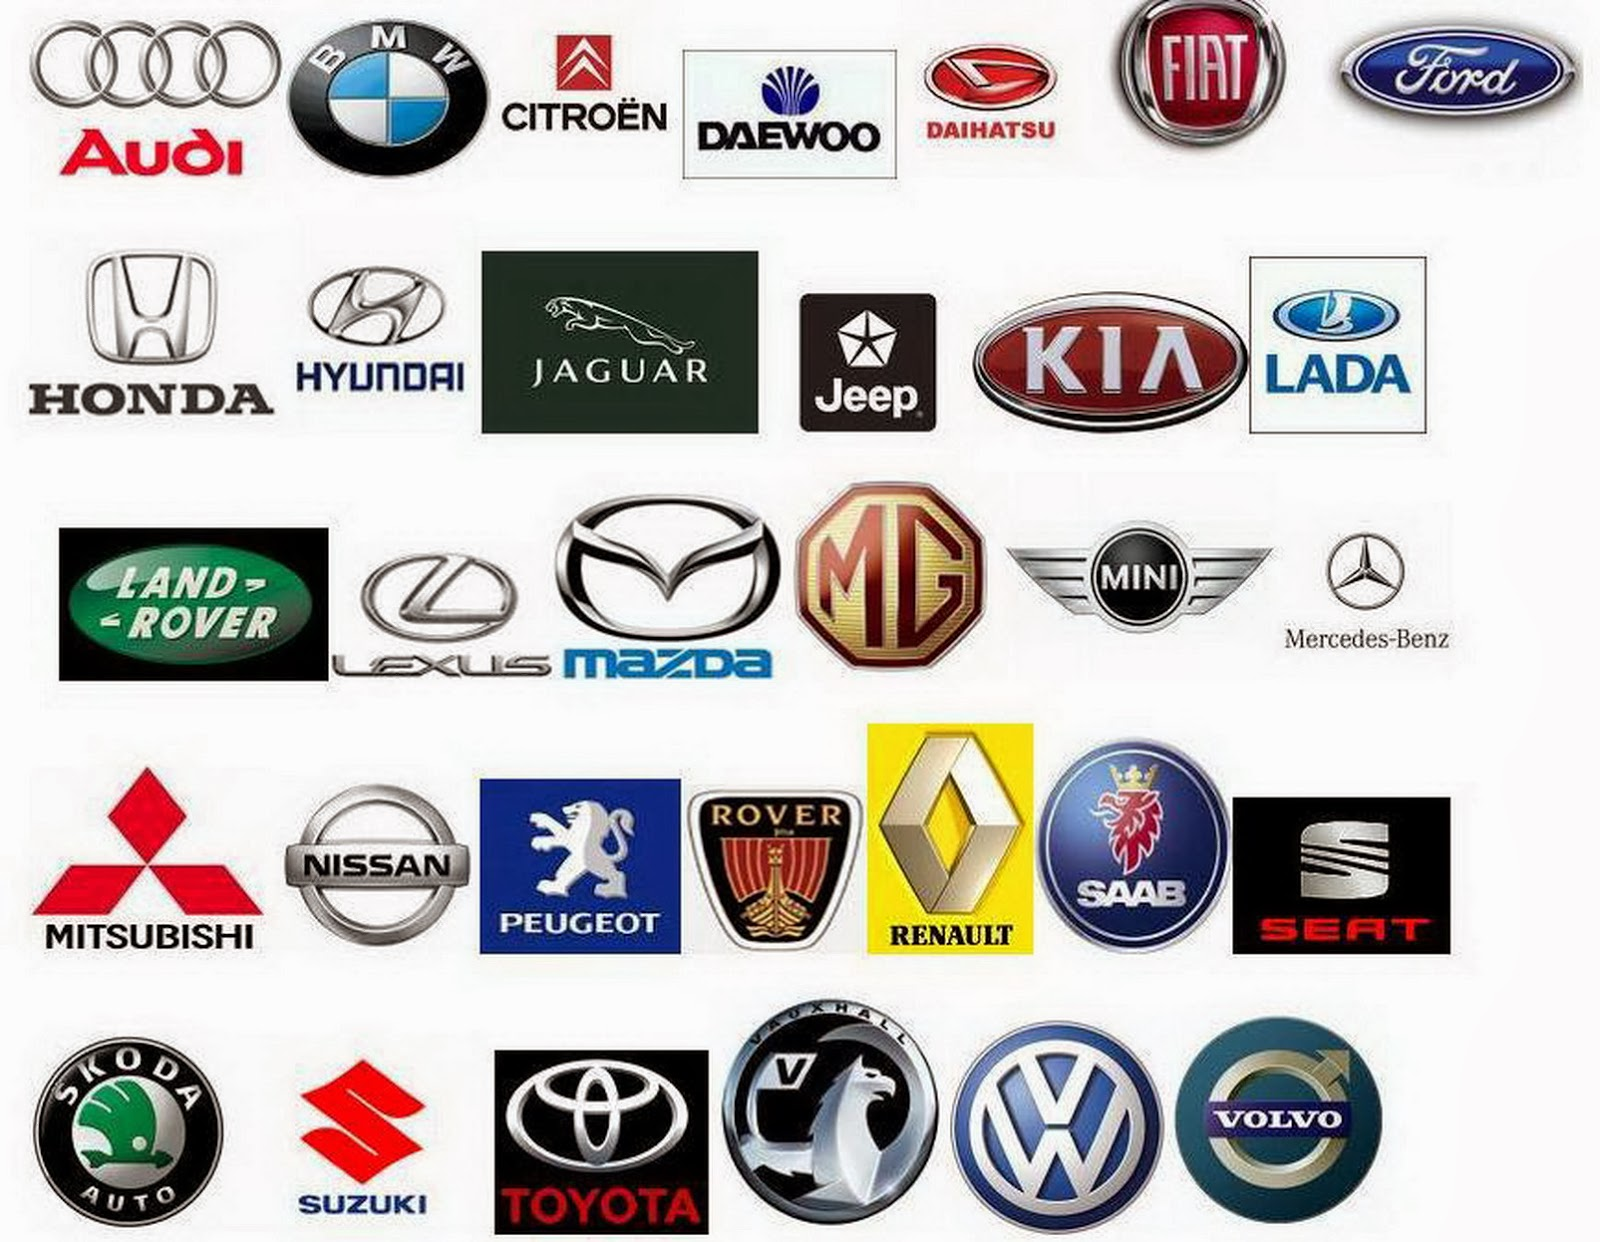 Automotive Manufacturer Symbols - Cool car companies